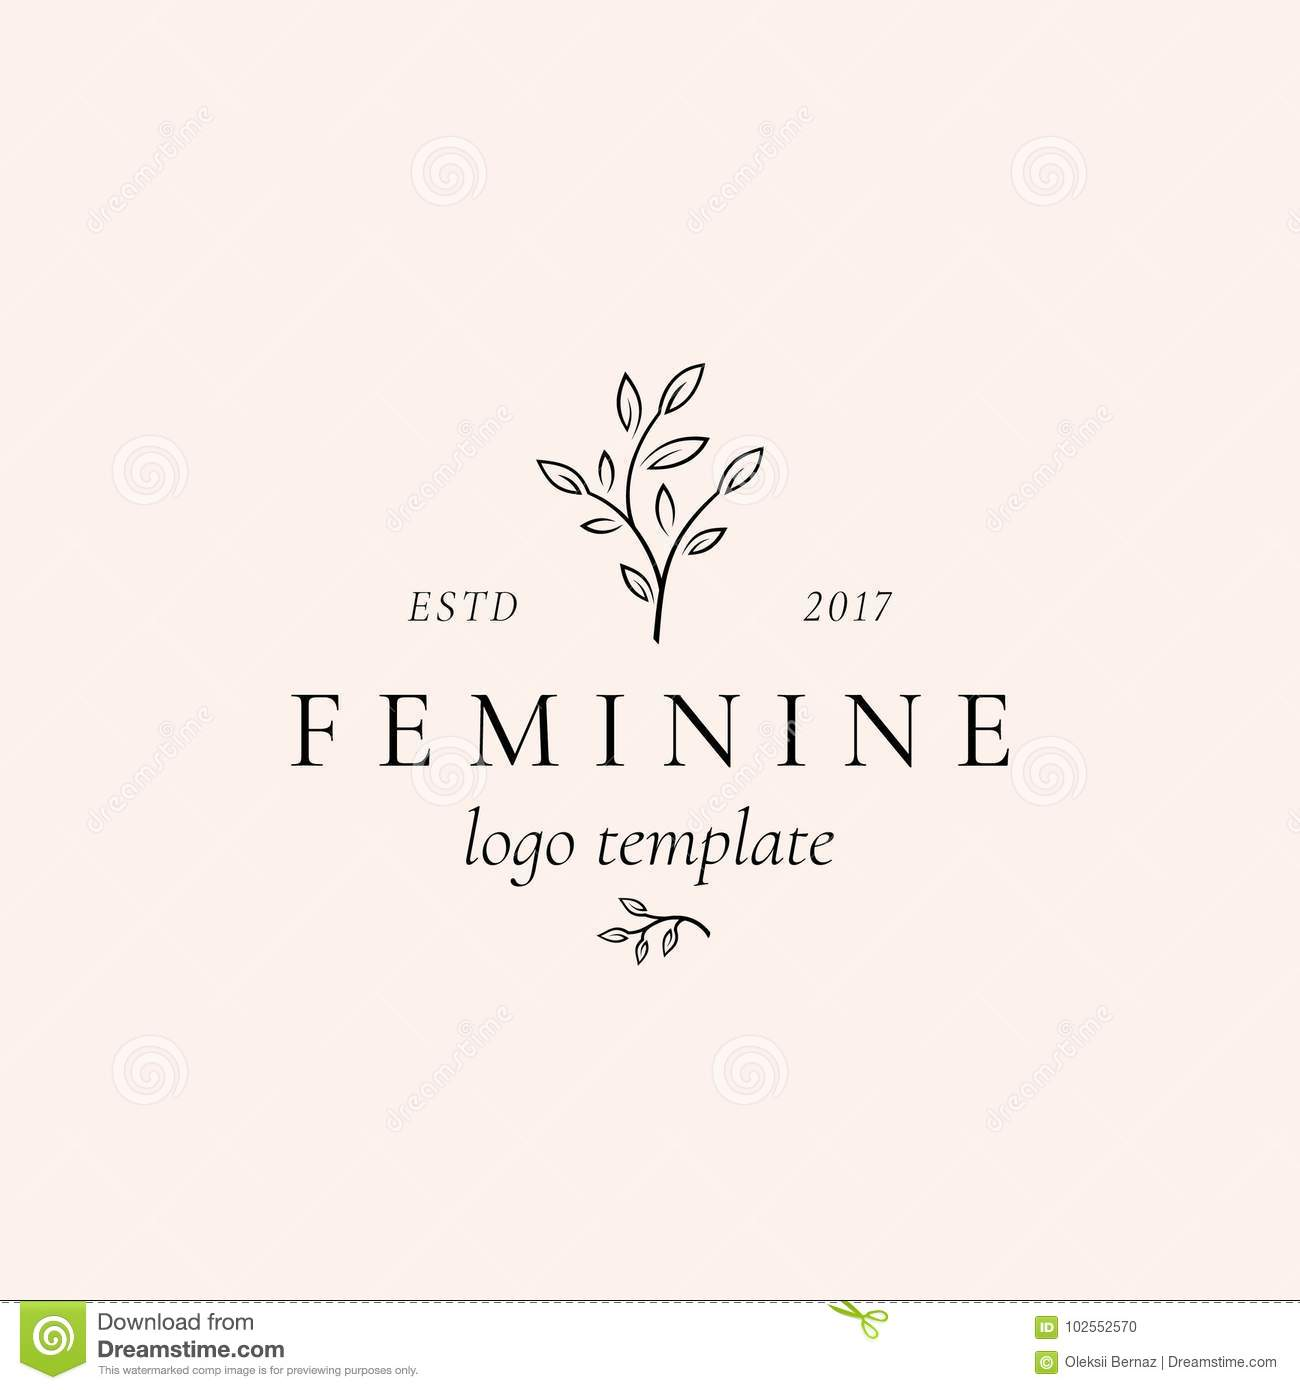 Abstract Feminine Vector Sign, Symbol or Logo Template. Retro Floral Illustration with Classy Typography. Premium